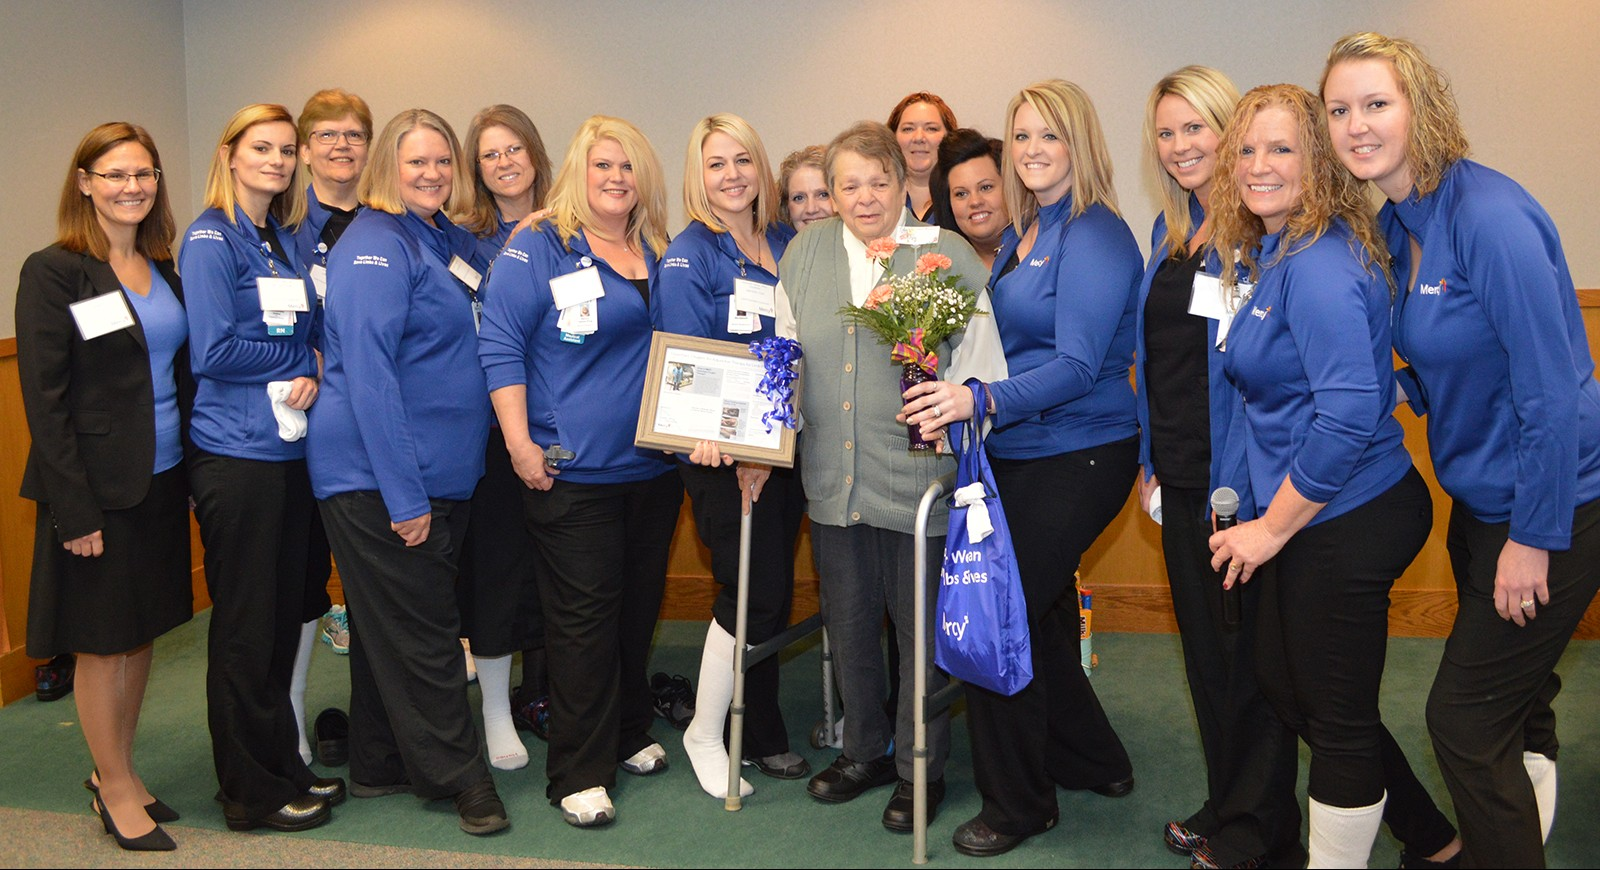 Members of the Wound Care team surround Patricia Jones after her presentation during the Limb Preservation Symposium.